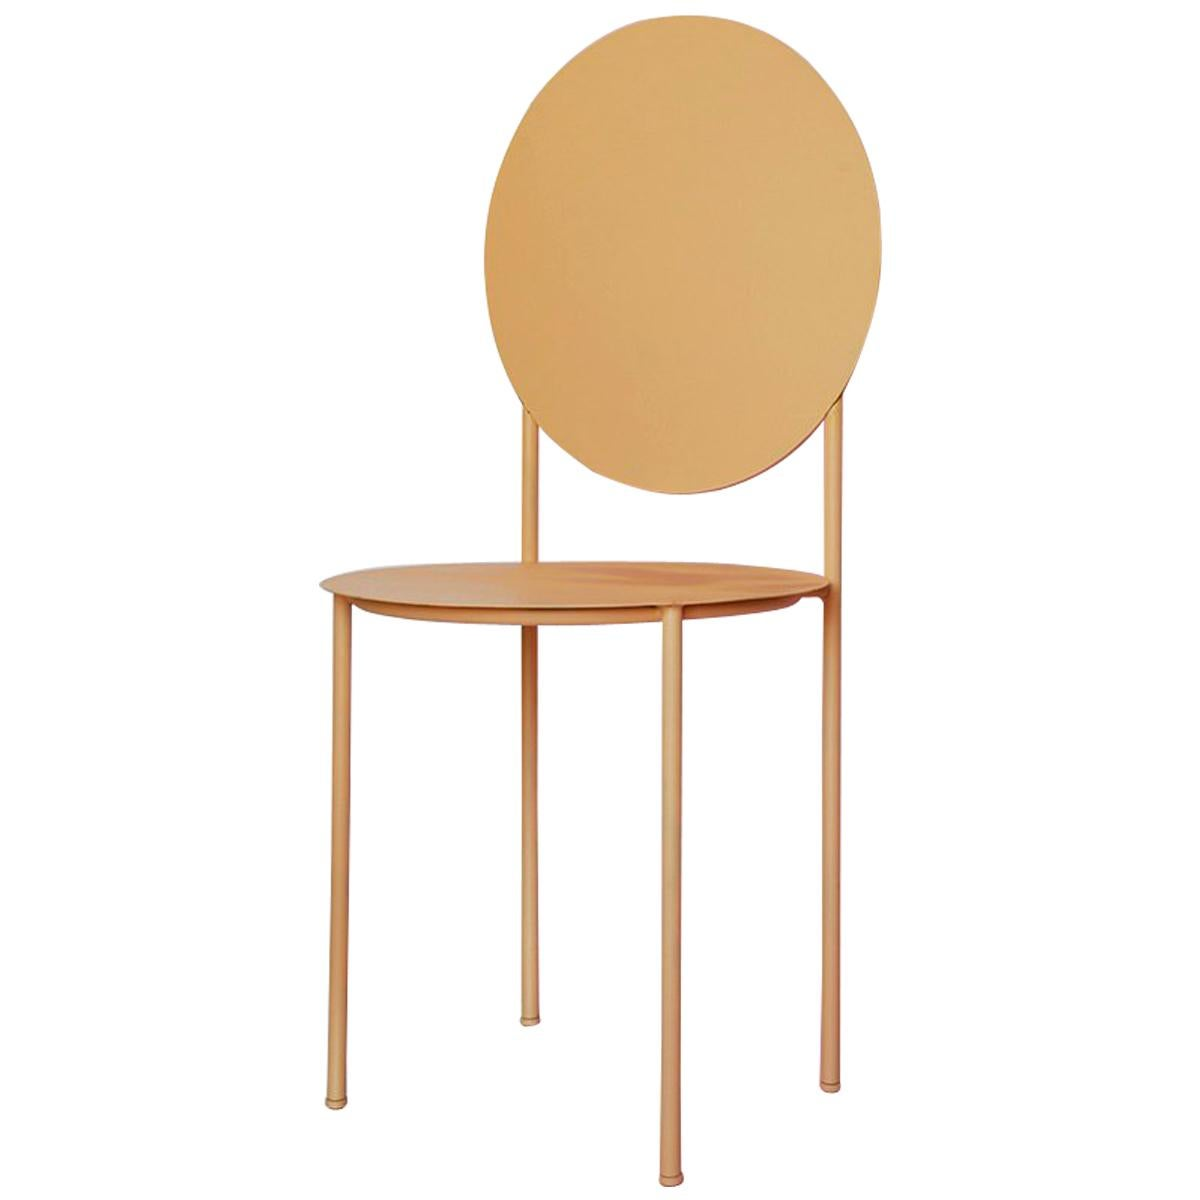 La Prima Dining or Side Chair in Powder-Coated Peach Lacquered Galvanized Steel